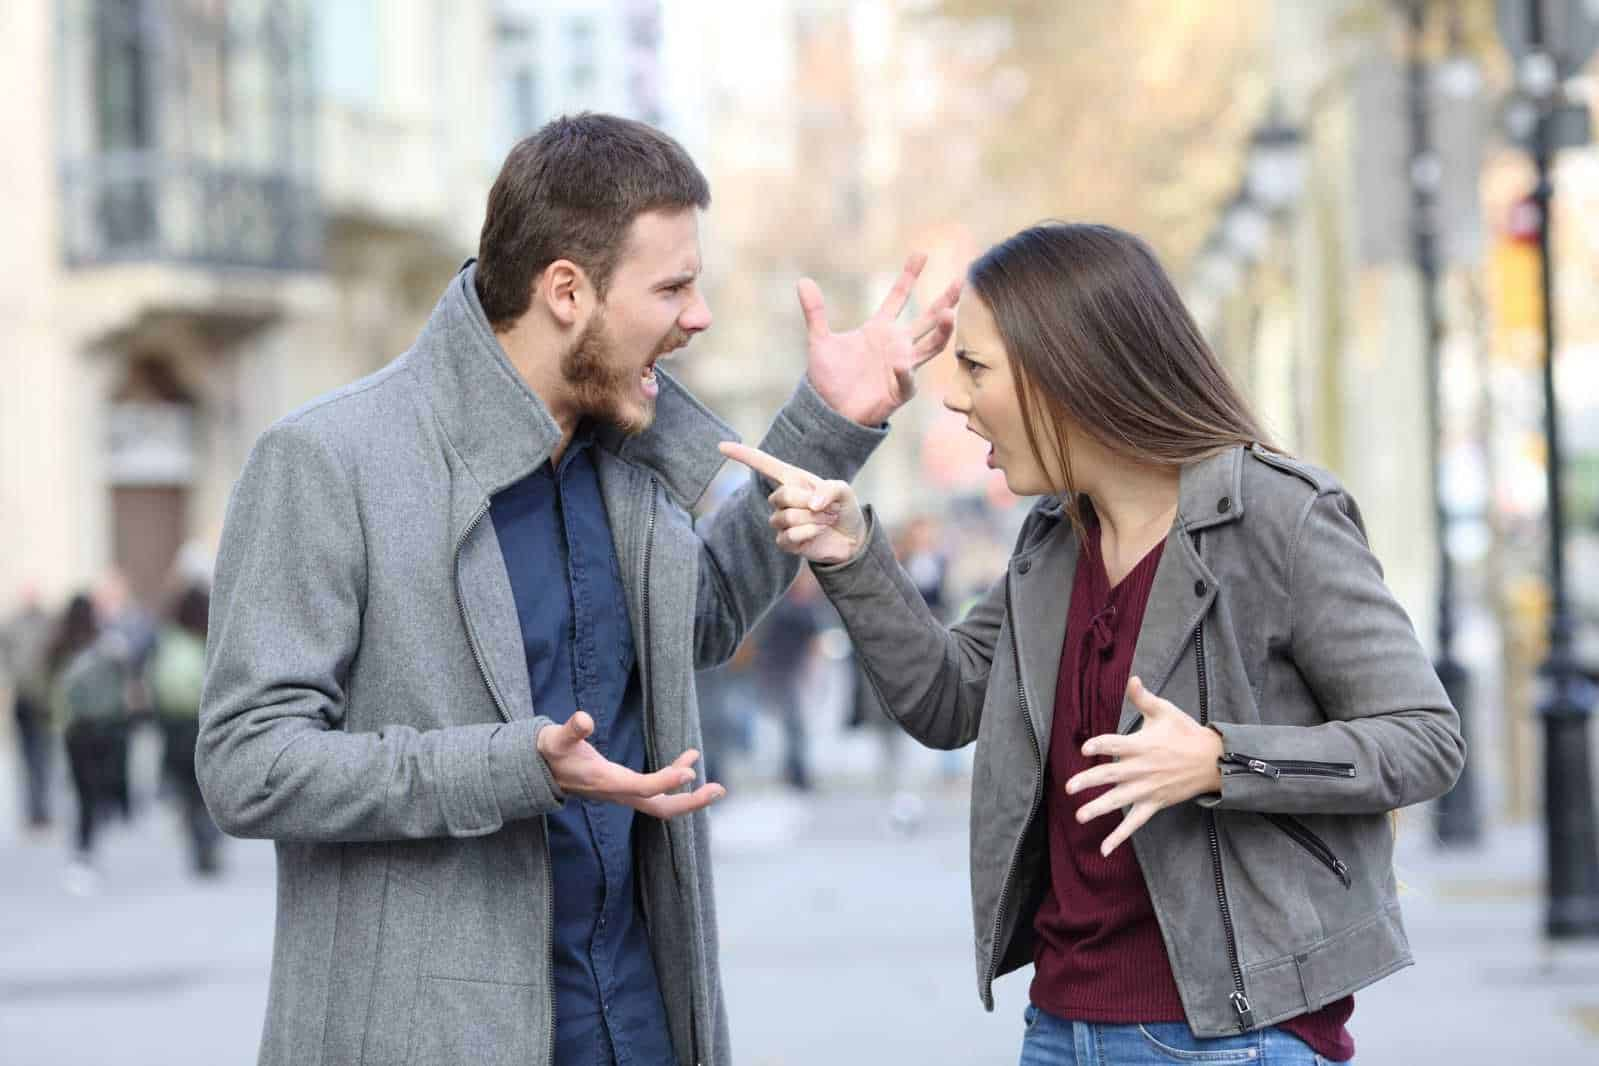 Anger Management Street Argument